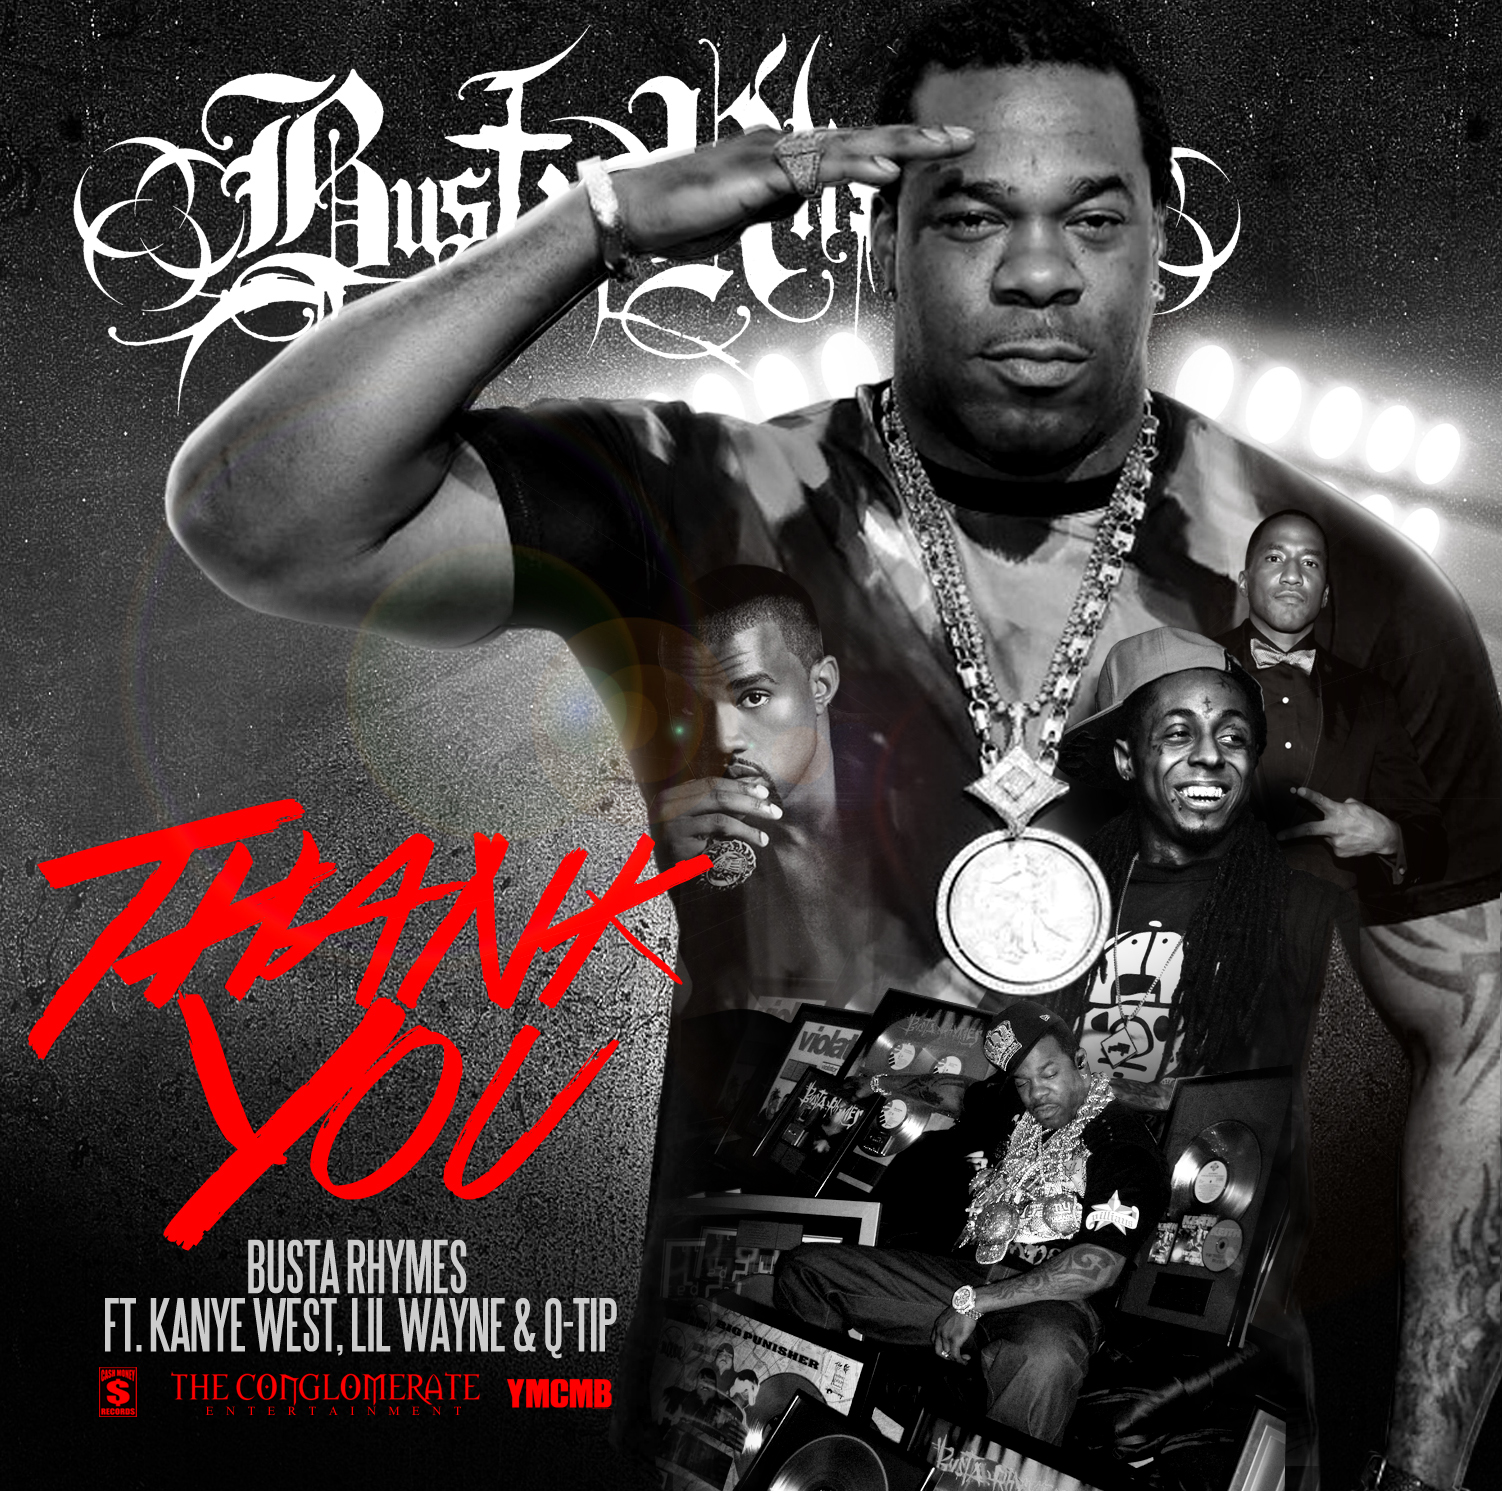 00 Busta Rhymes-Thank You